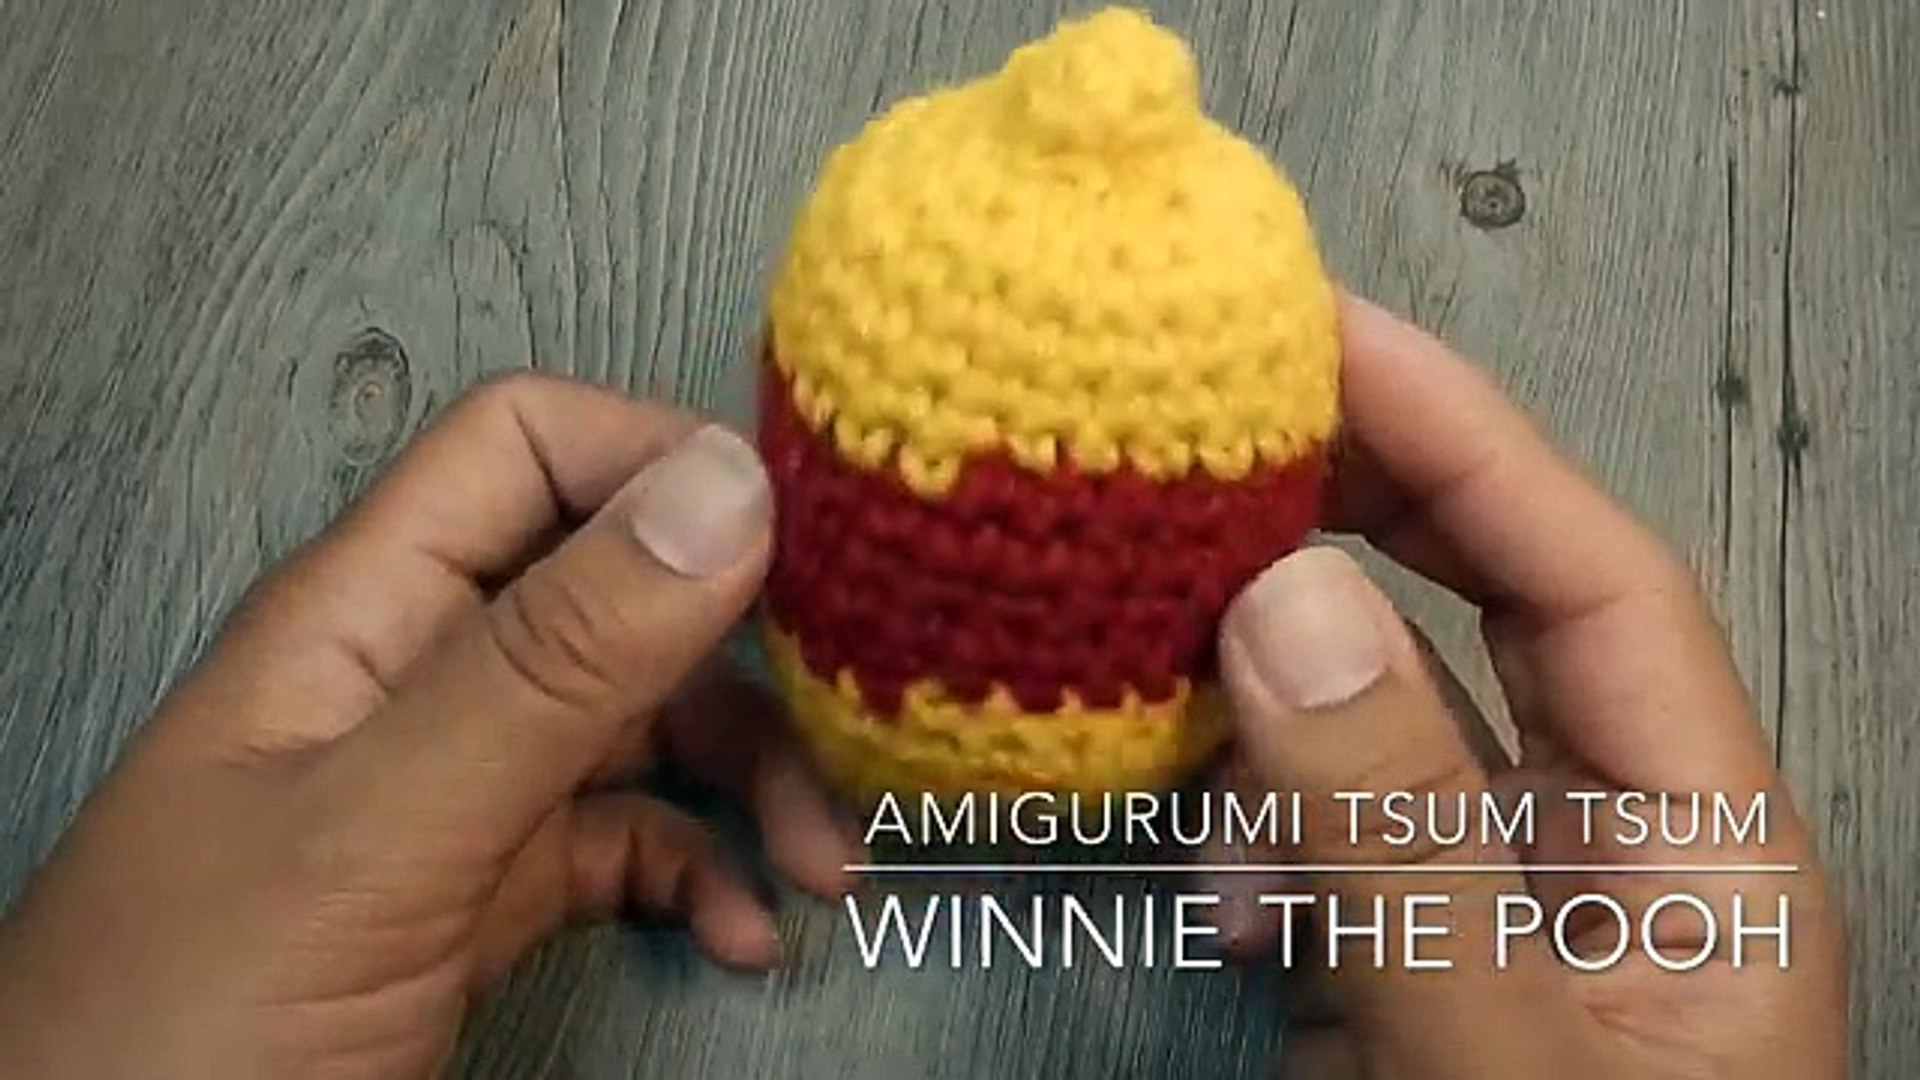 Amazon.com: Crochet Winnie the Pooh, amigurumi stuffed plush toy ... | 1080x1920